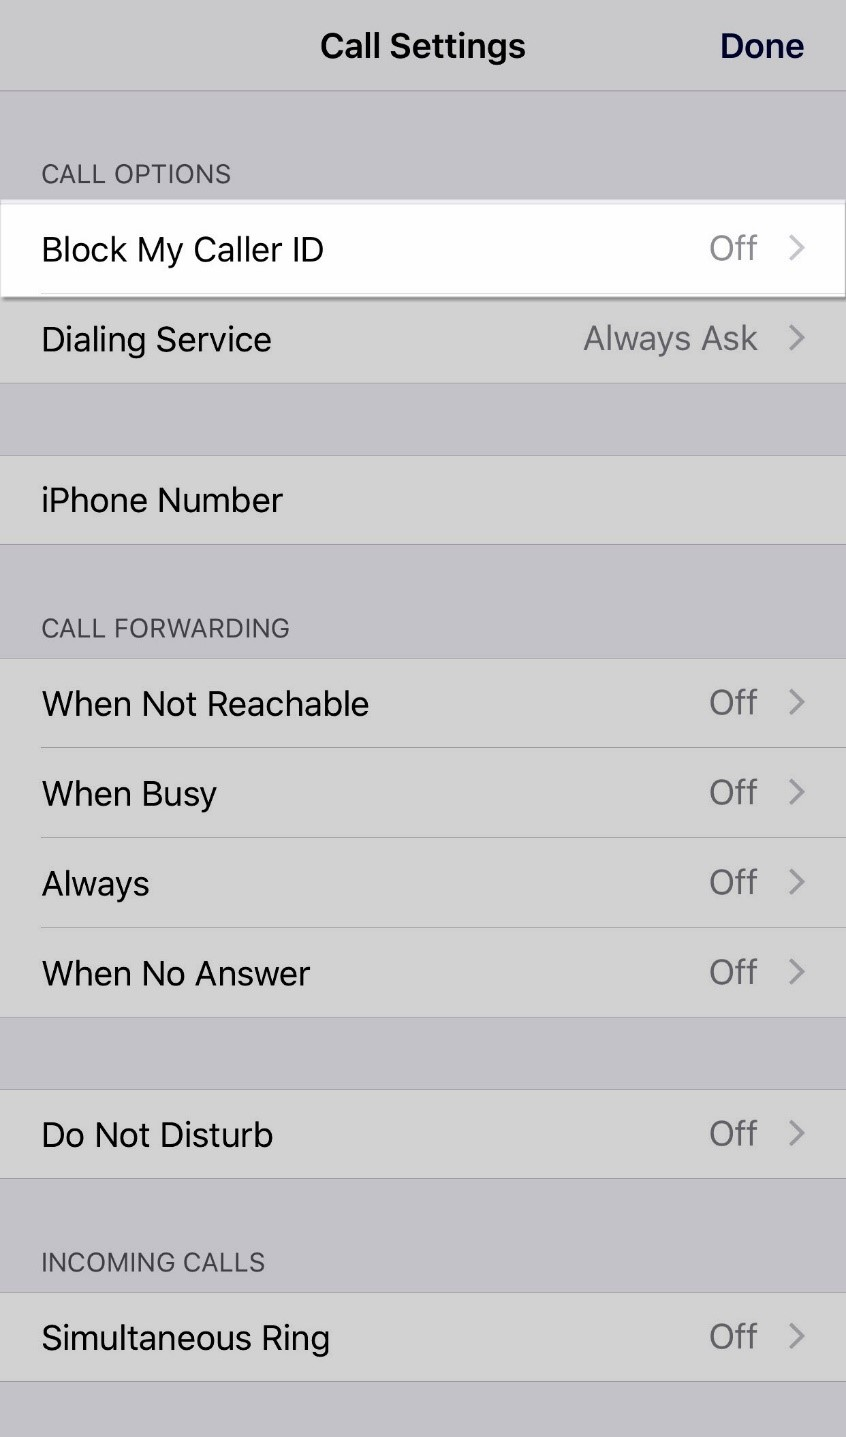 Block my caller ID is highlighted under call settings menu - Image opens in full resolution in a new tab